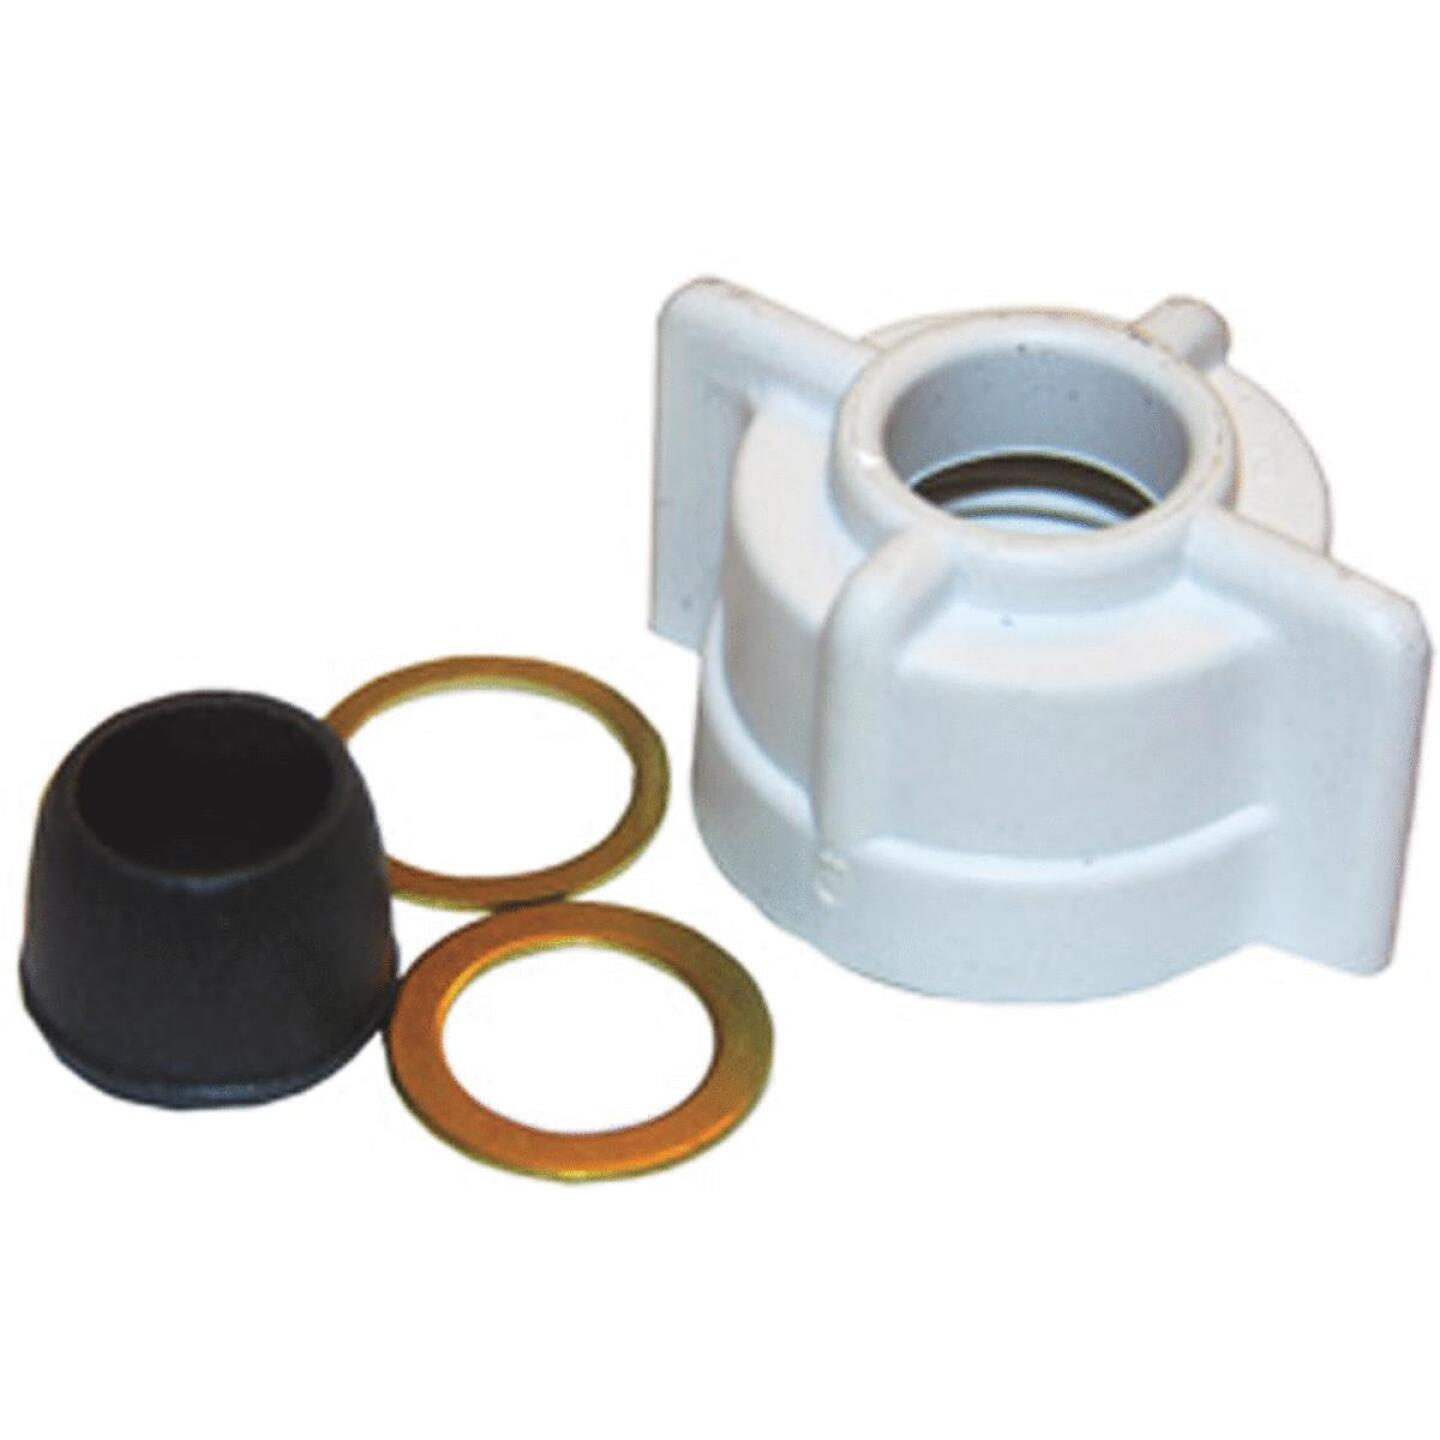 Lasco 1/2 In. FPT x 3/8 In. OD Tube White Plastic Slip Joint Nut and Washer Image 1